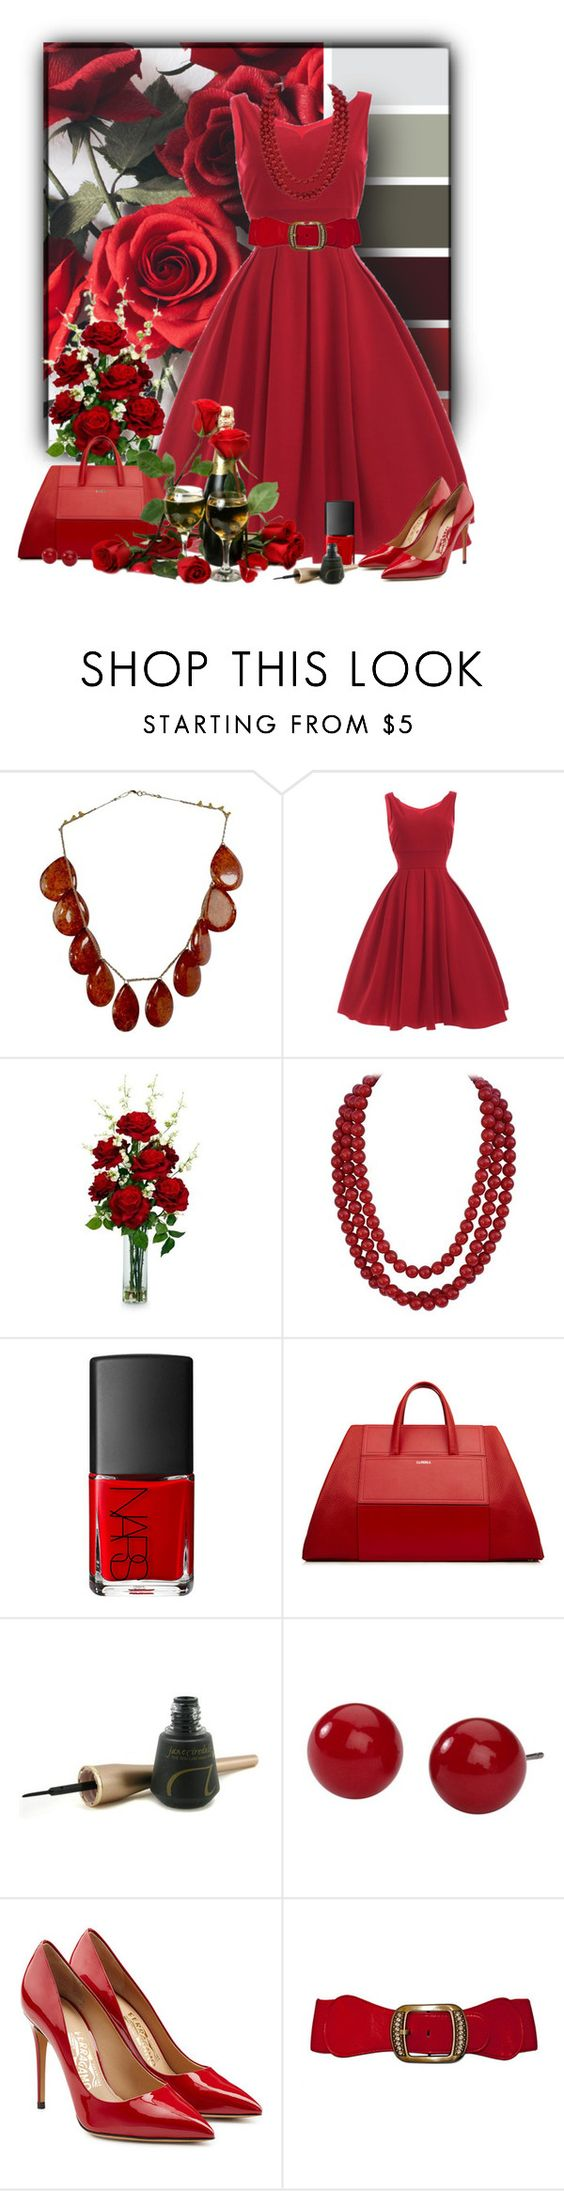 """""""Untitled #1560"""" by tinkertot ❤ liked on Polyvore featuring Trilogy, Nearly Natural, NARS Cosmetics, Jane Iredale, Kim Rogers and Salvatore Ferragamo"""